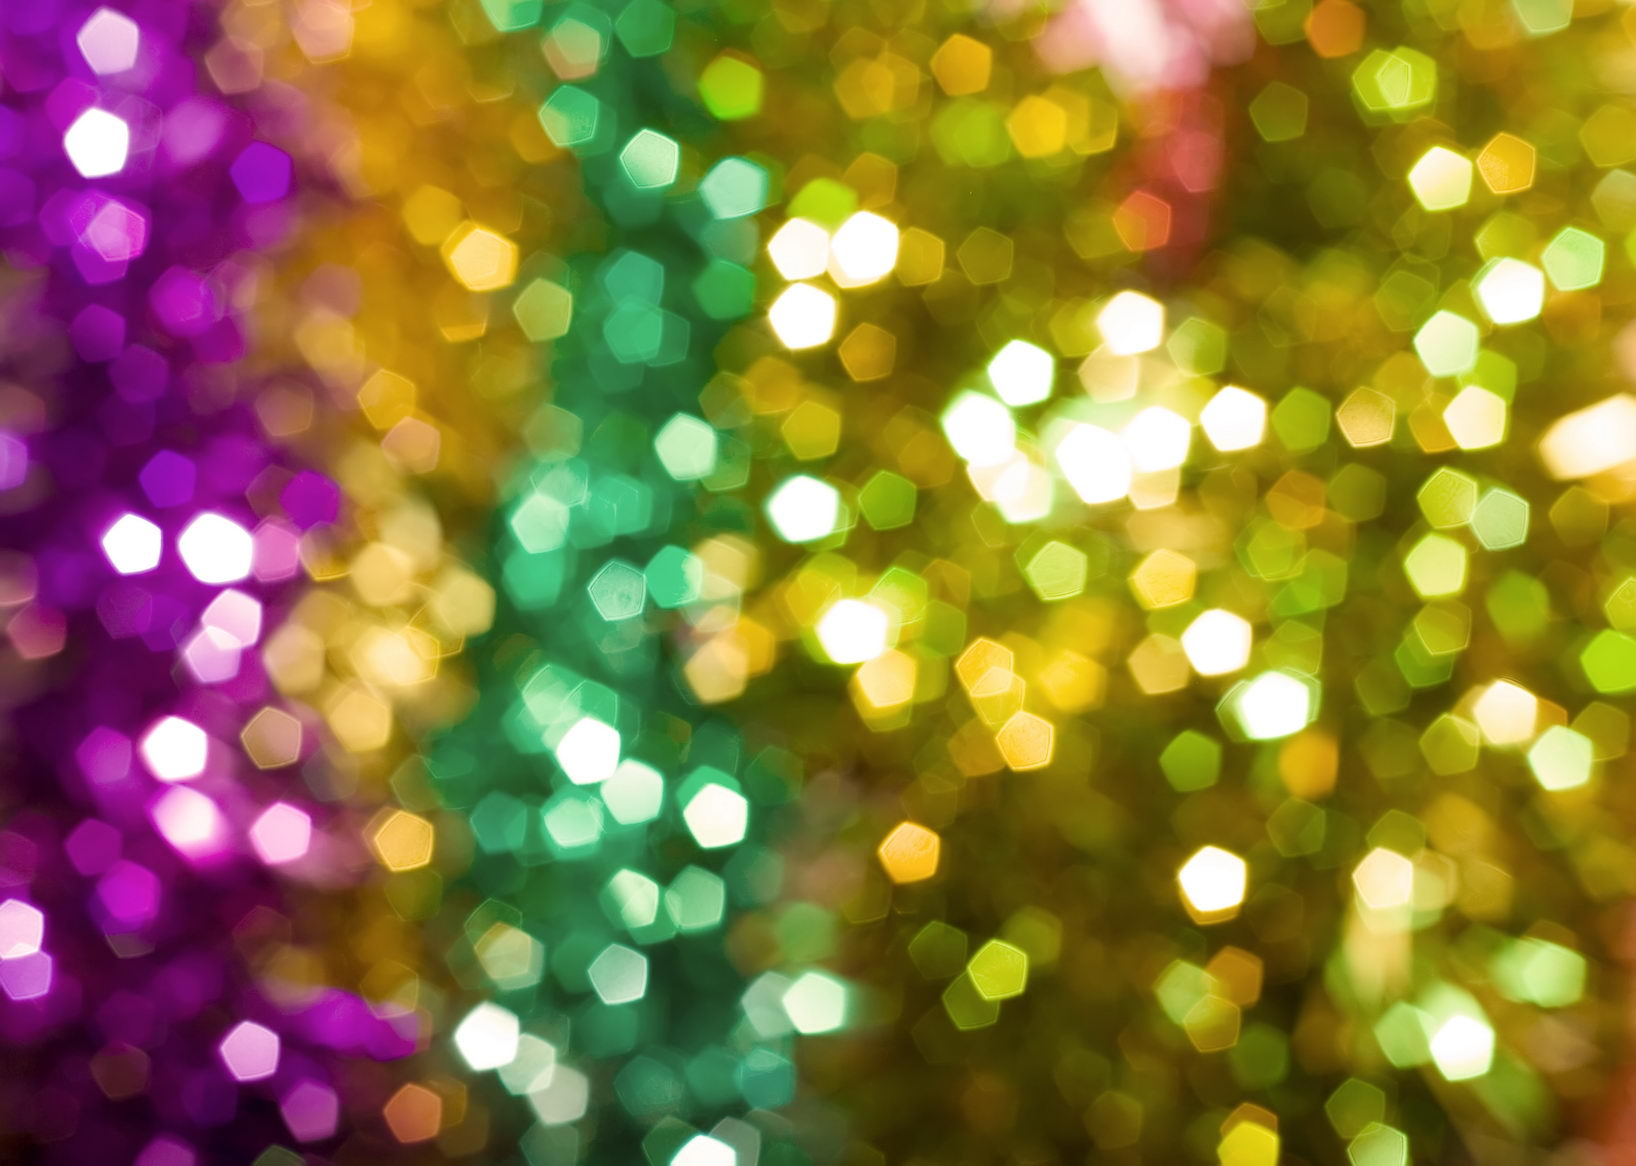 blur background, Abstract, Glow, Xmas, Vivid, HQ Photo